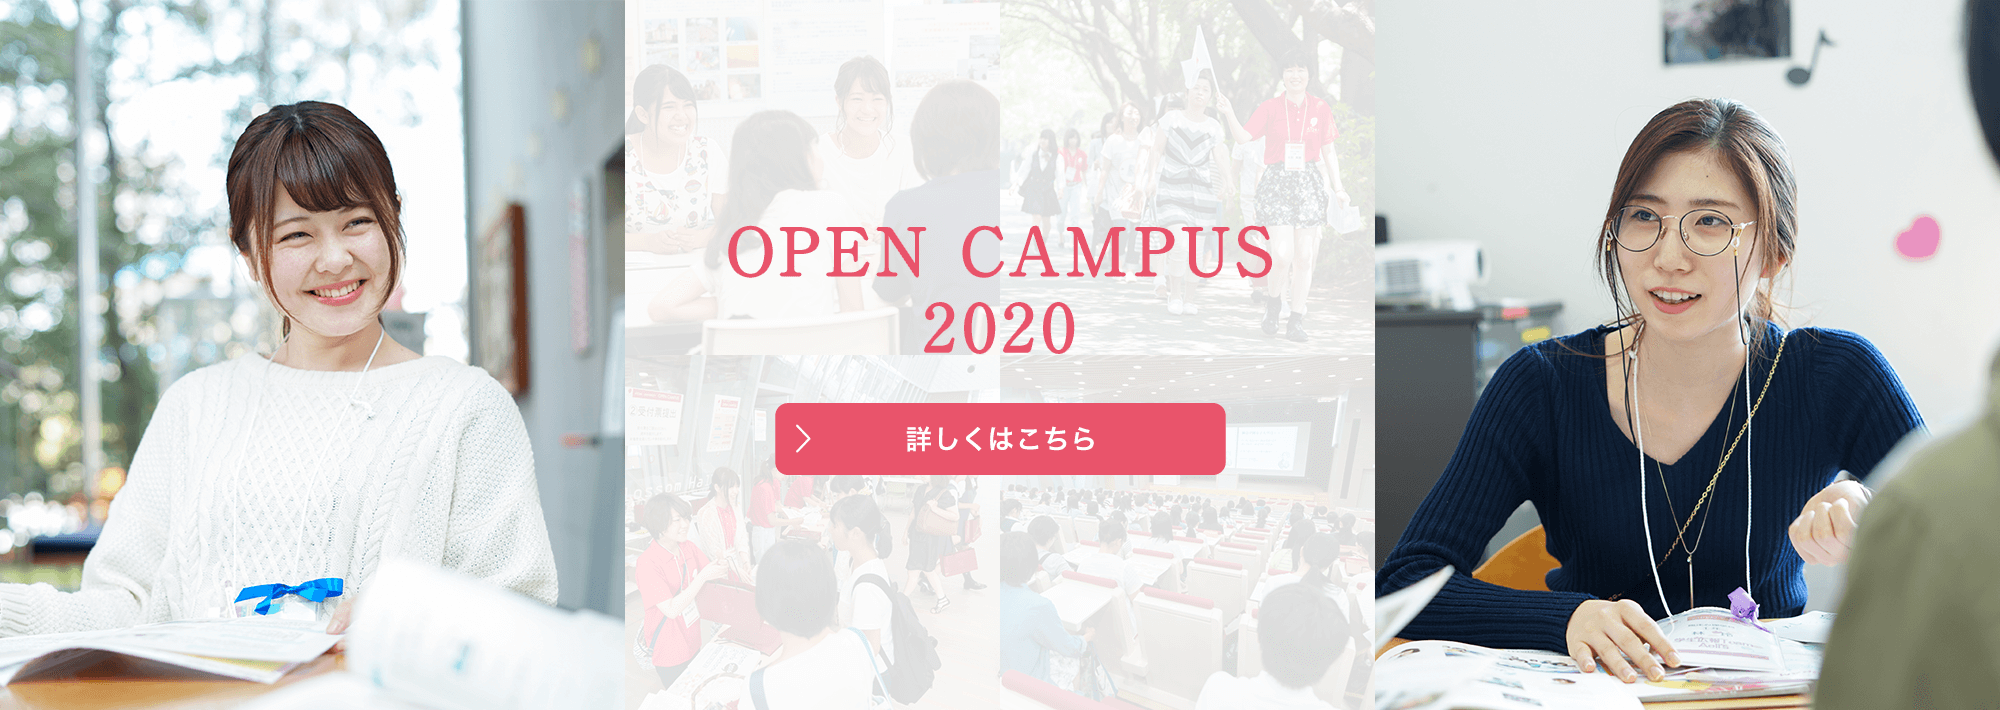 OPEN CAMPUS 2020 3/28スタート!